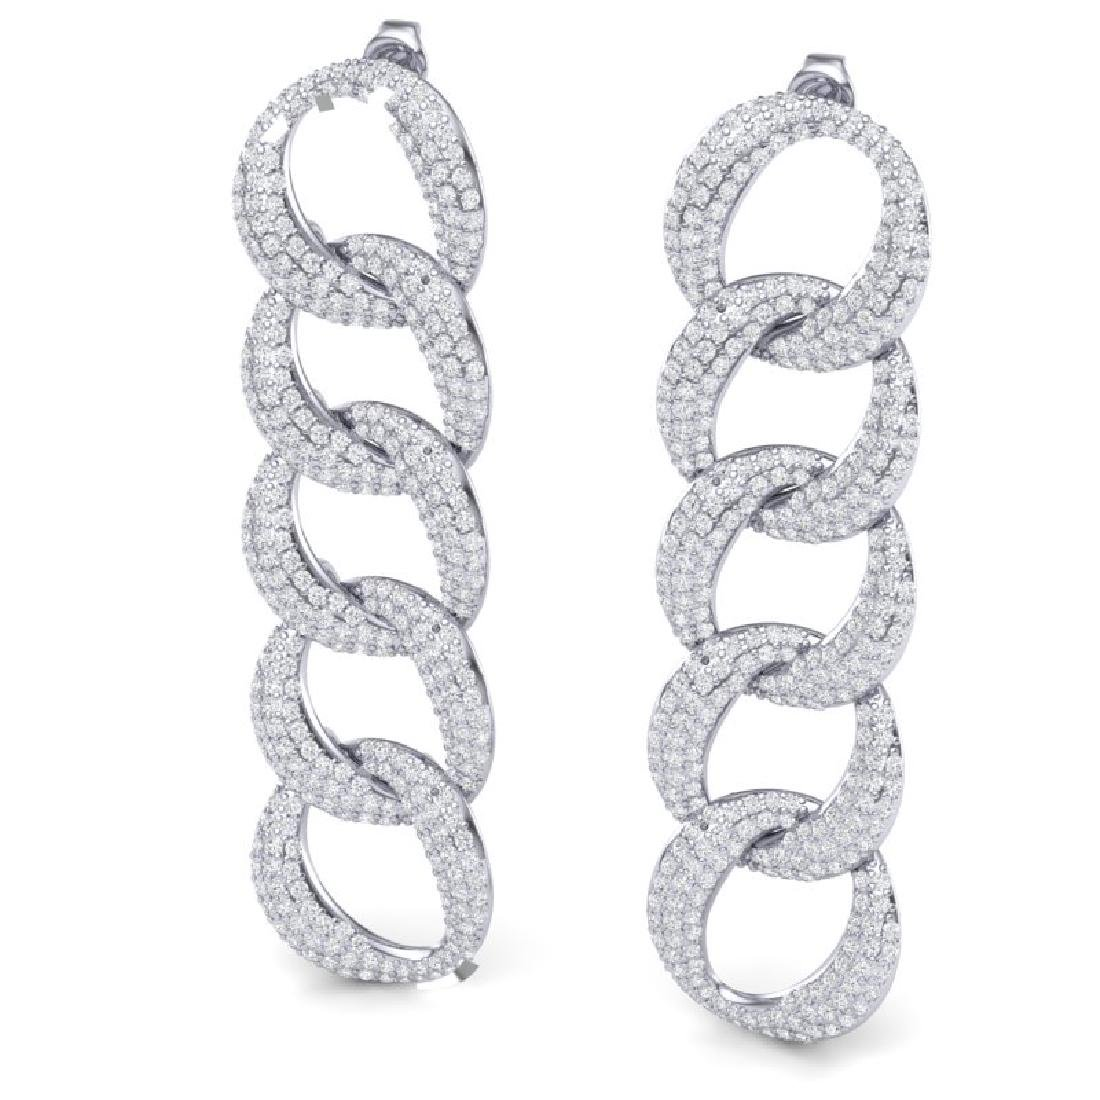 5 CTW Certified VS/SI Diamond Earrings 18K White Gold